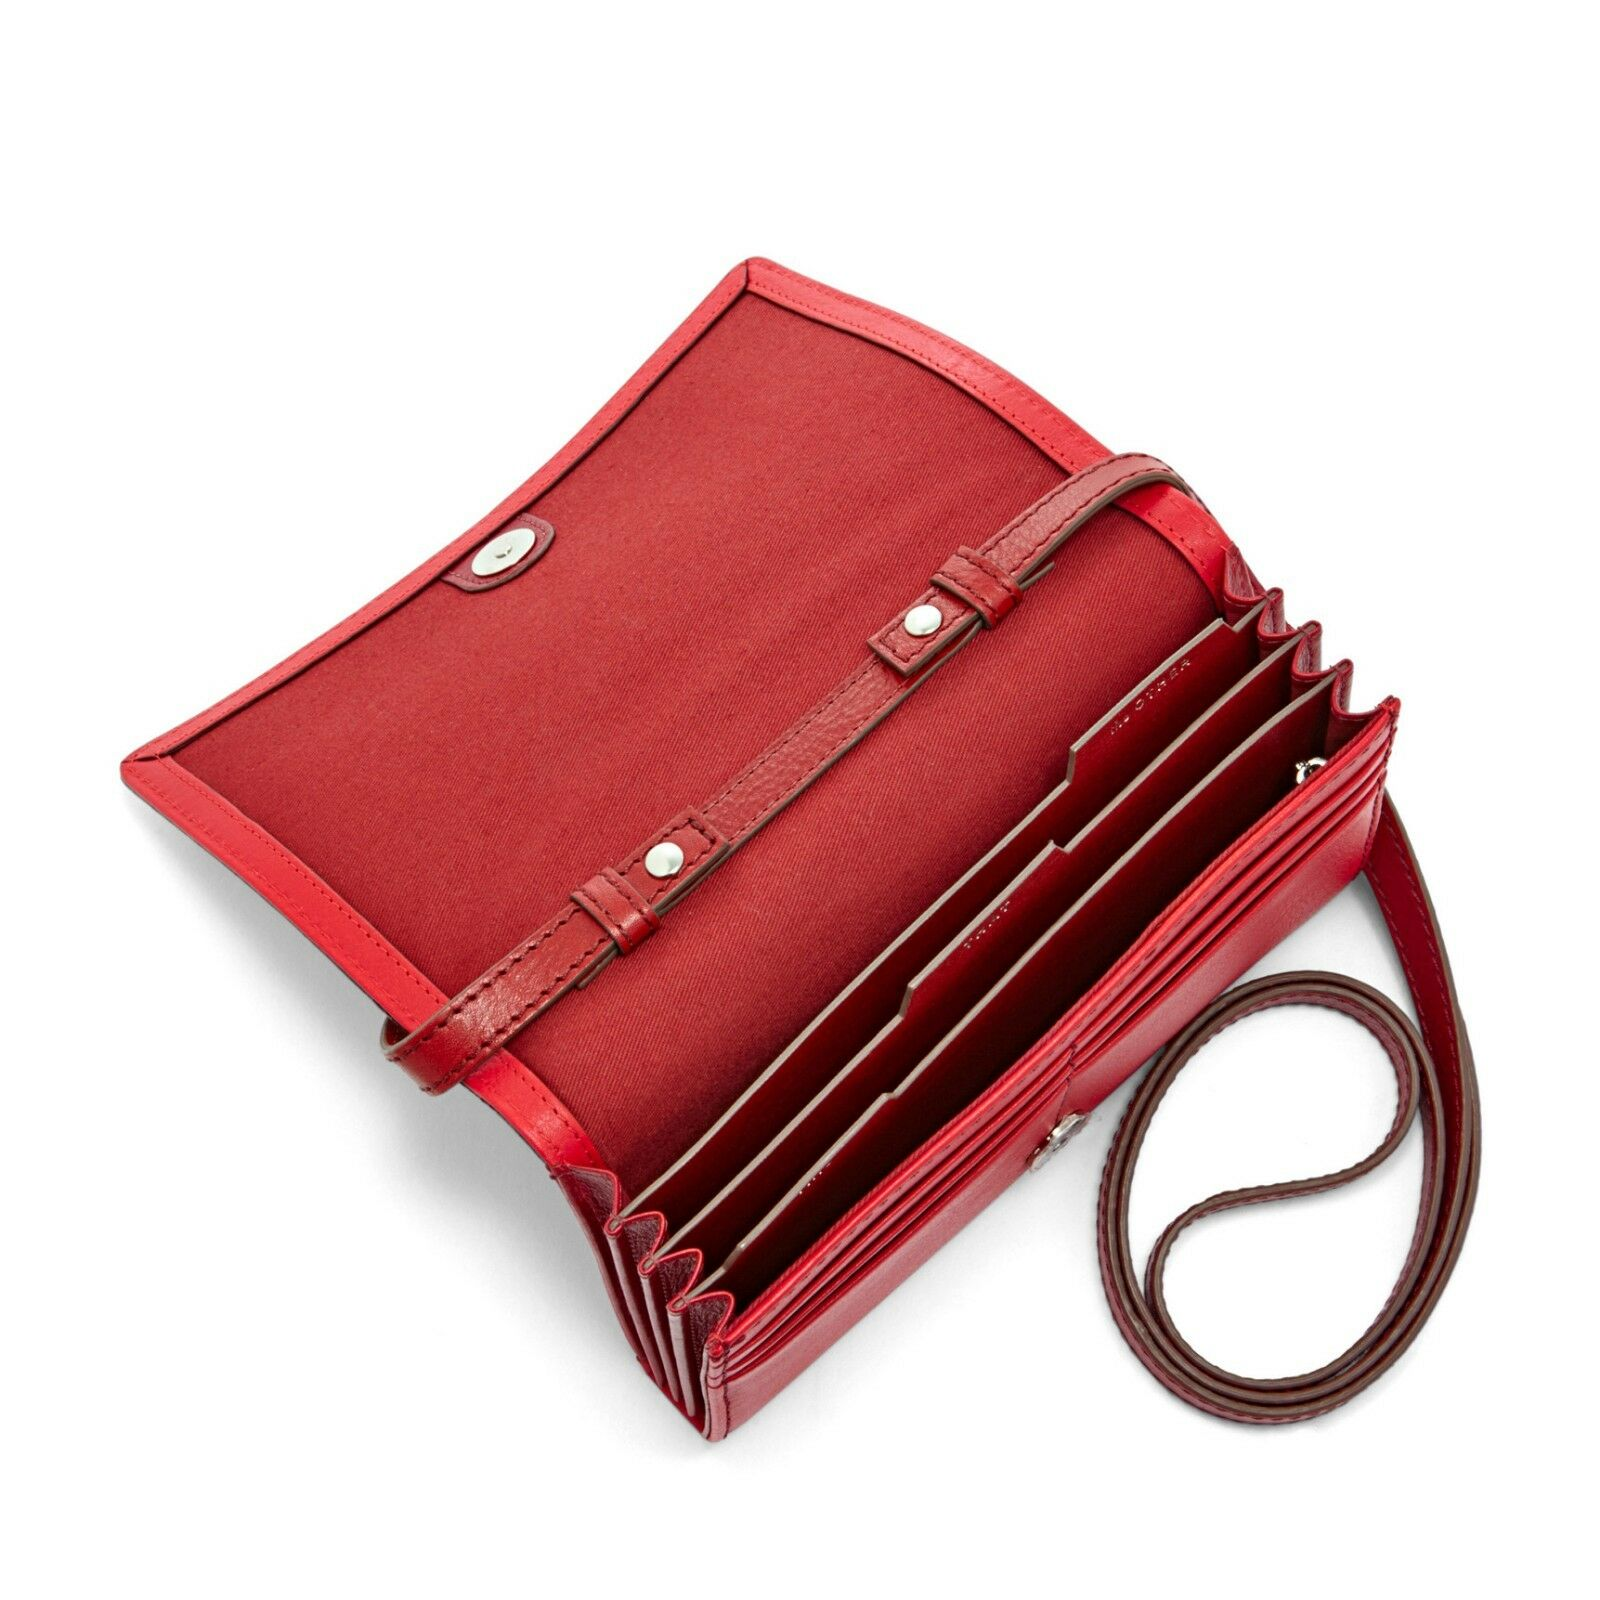 Fossil Emerson Large Trifold Camel Sl 6983235 Spec Dan Daftar Dawson Multifunction Black 6675001 Haven Brown Leather Triple Gusset Flap Clutch Wallet Women S Source Red